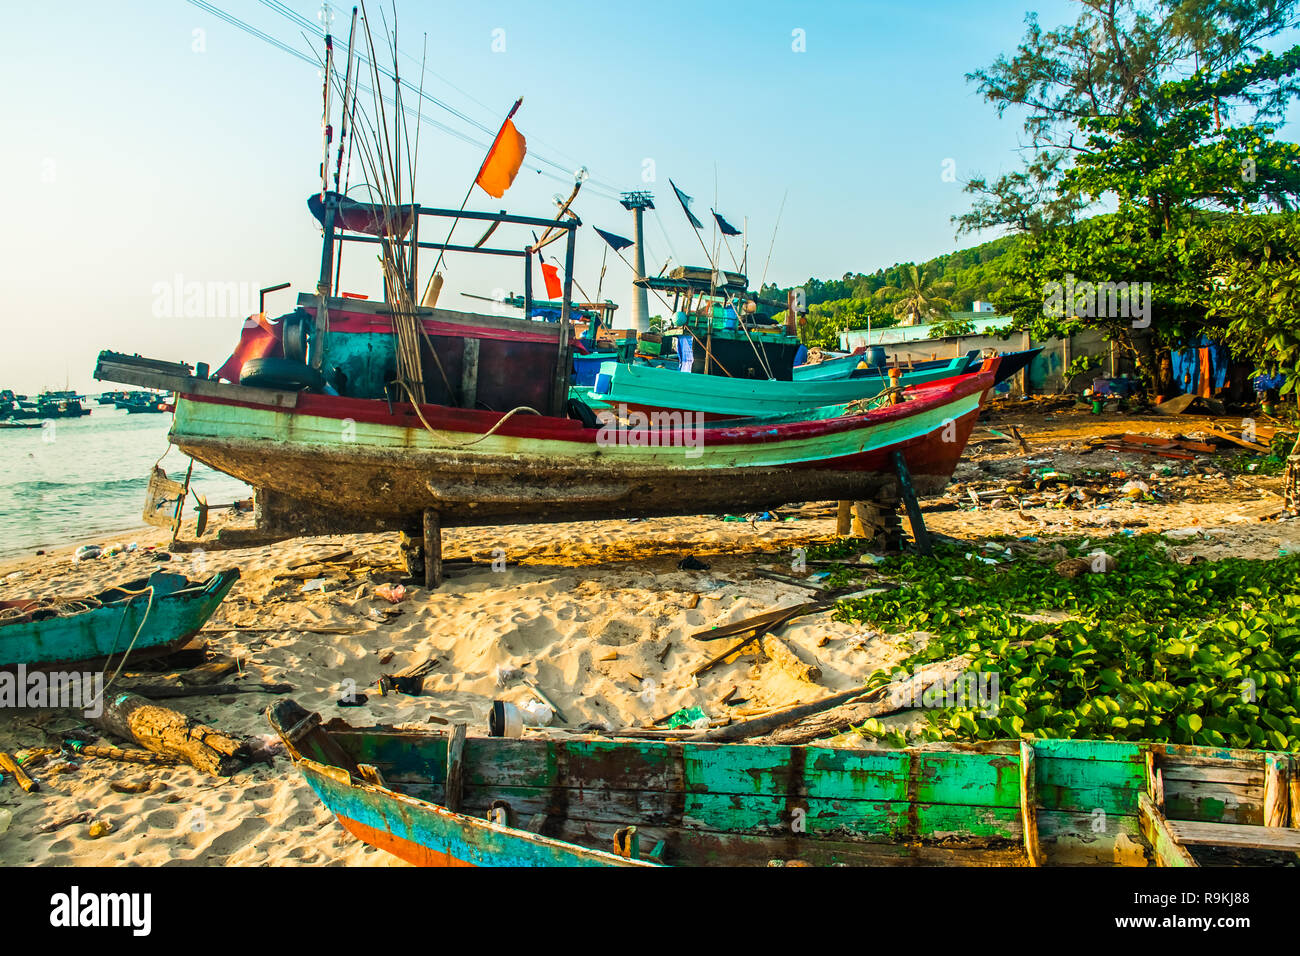 Traditional boats in Fishing village at port, Phu Quoc island in Vietnam - Stock Image